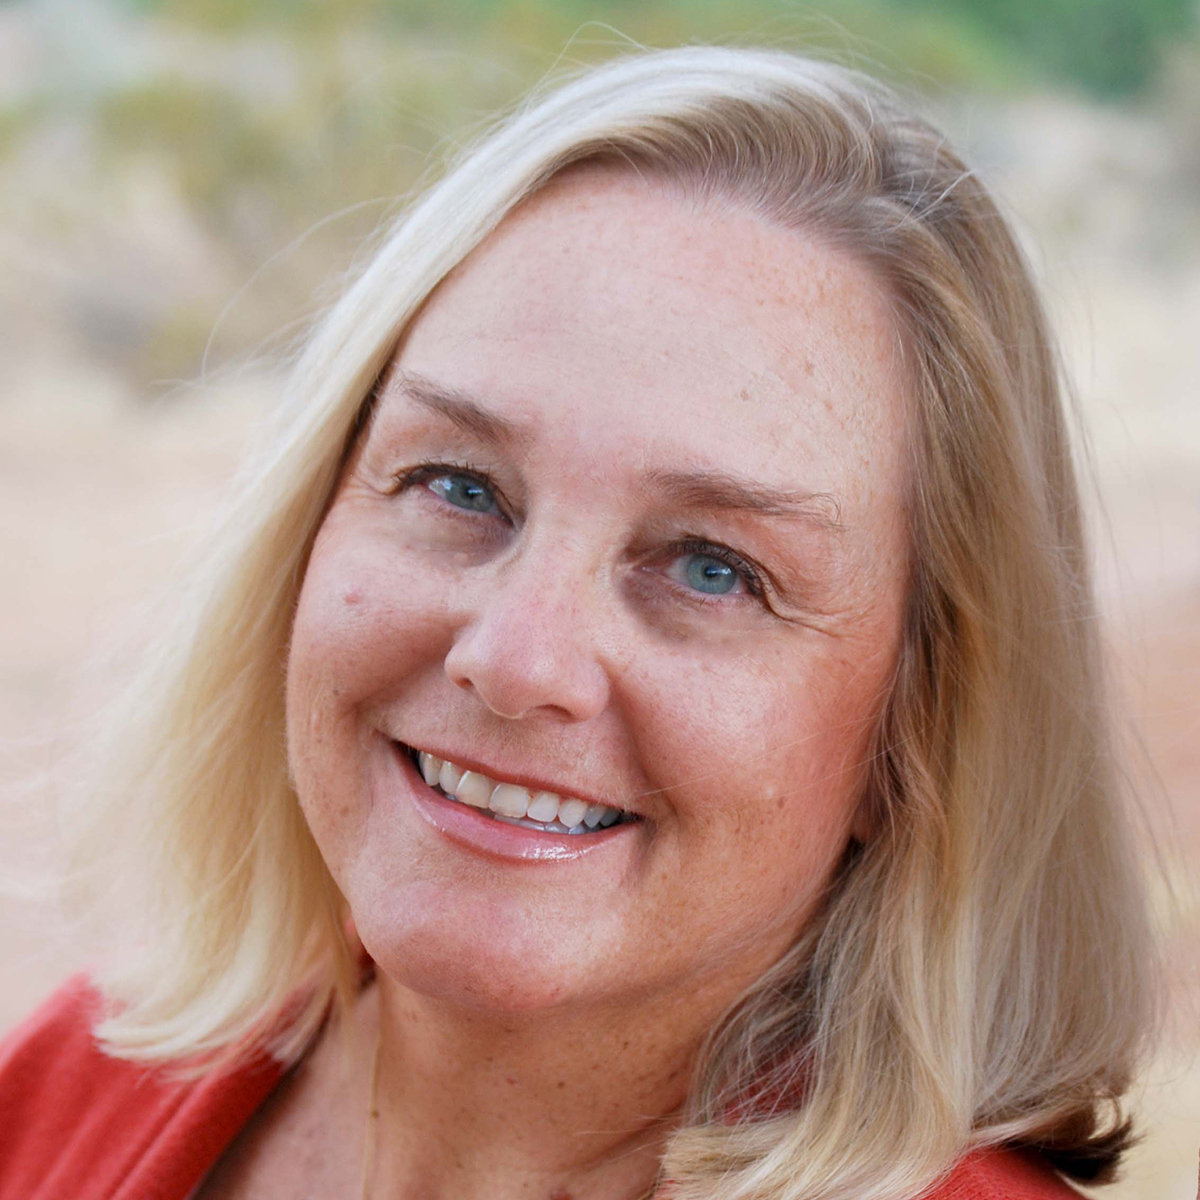 Food for Thought with Cindy Clemens (Guest Presenter Apr. 11-12)